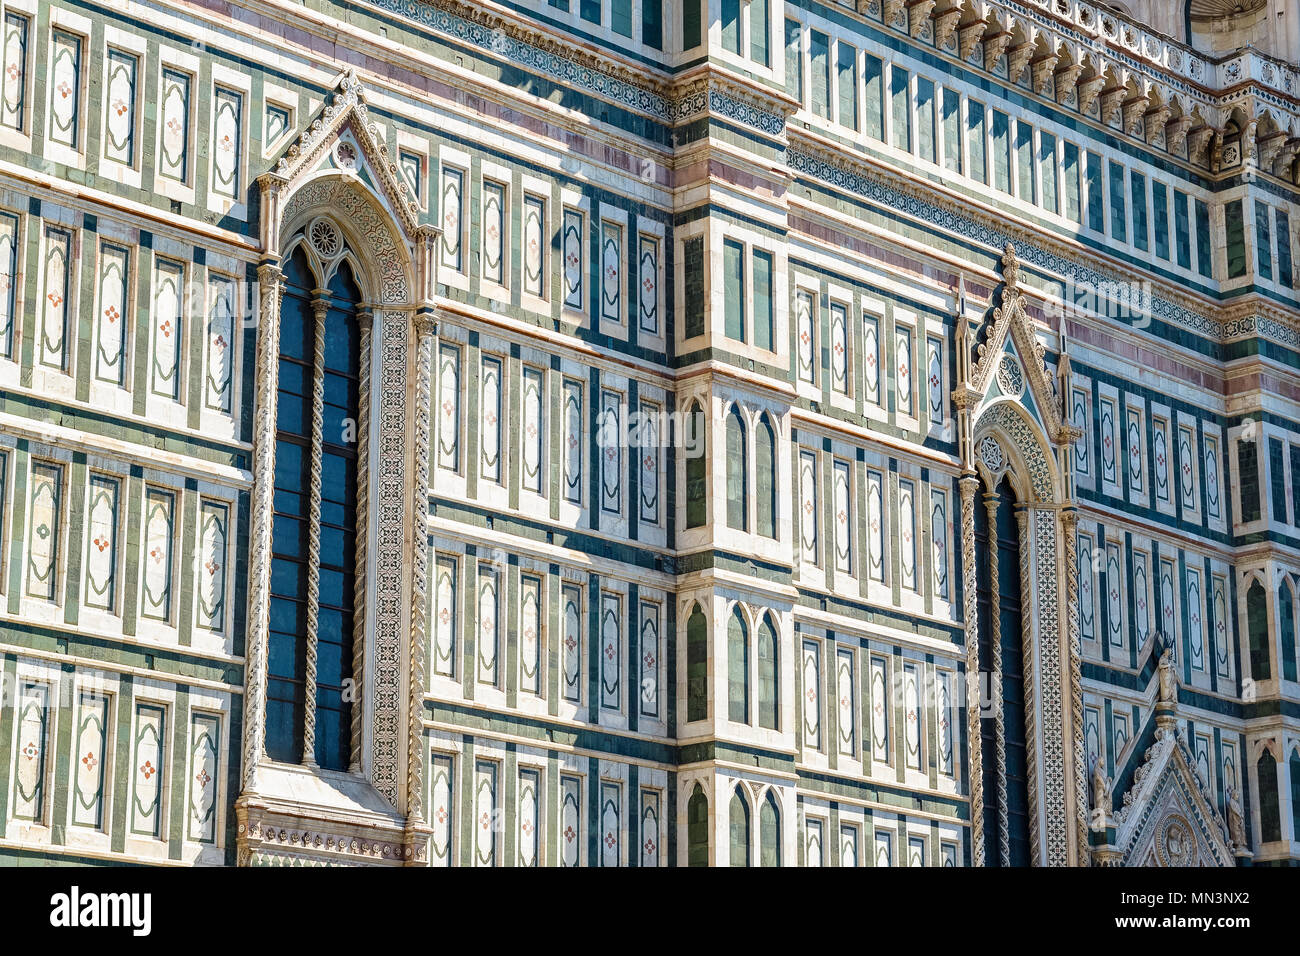 Exterior of the Cattedrale di Santa Maria del Fiore (Cathedral of Saint Mary of the Flower) in Florence, Italy - Stock Image